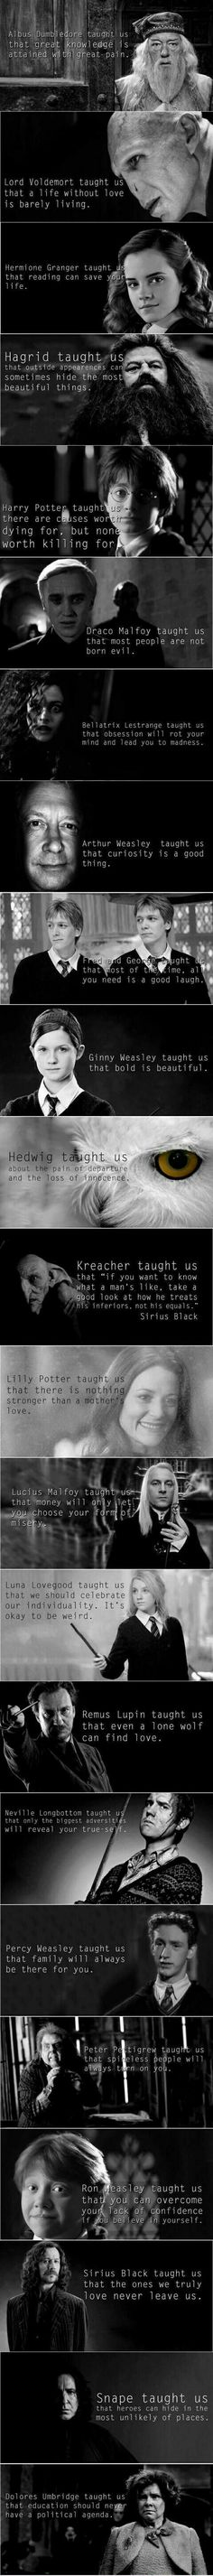 Each character taught me something special